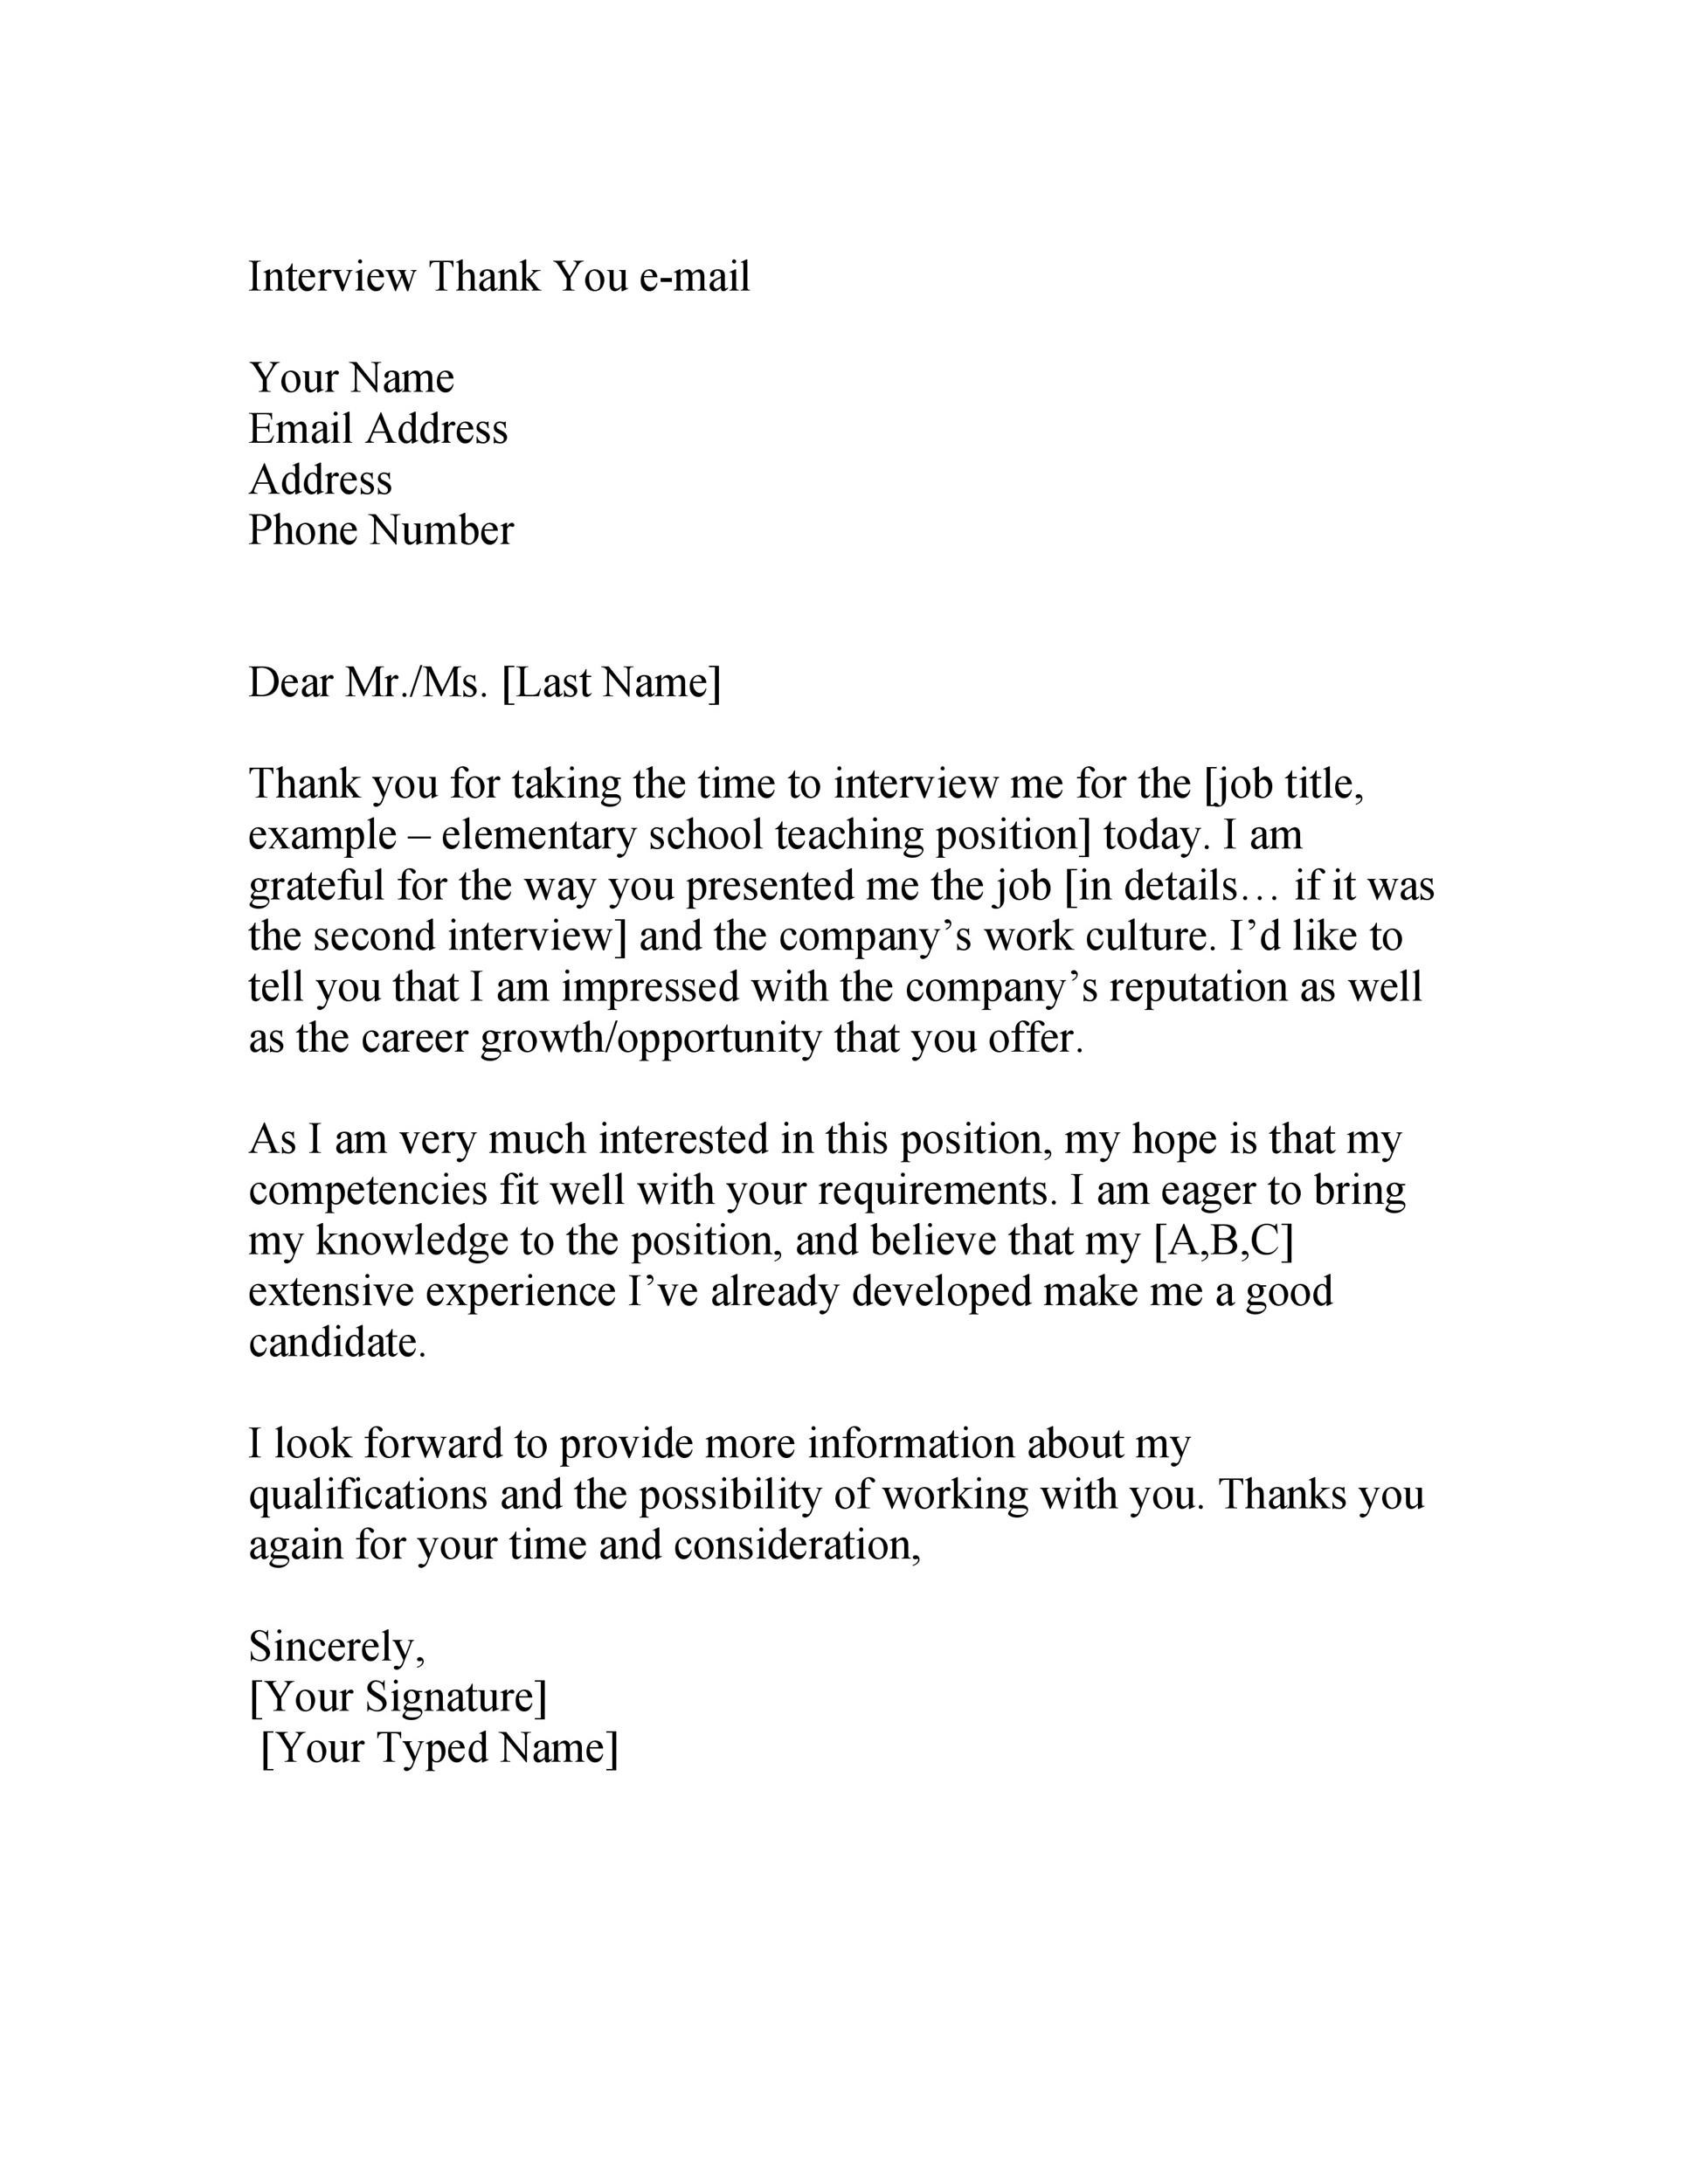 Thank You Email After Job Offer - Template